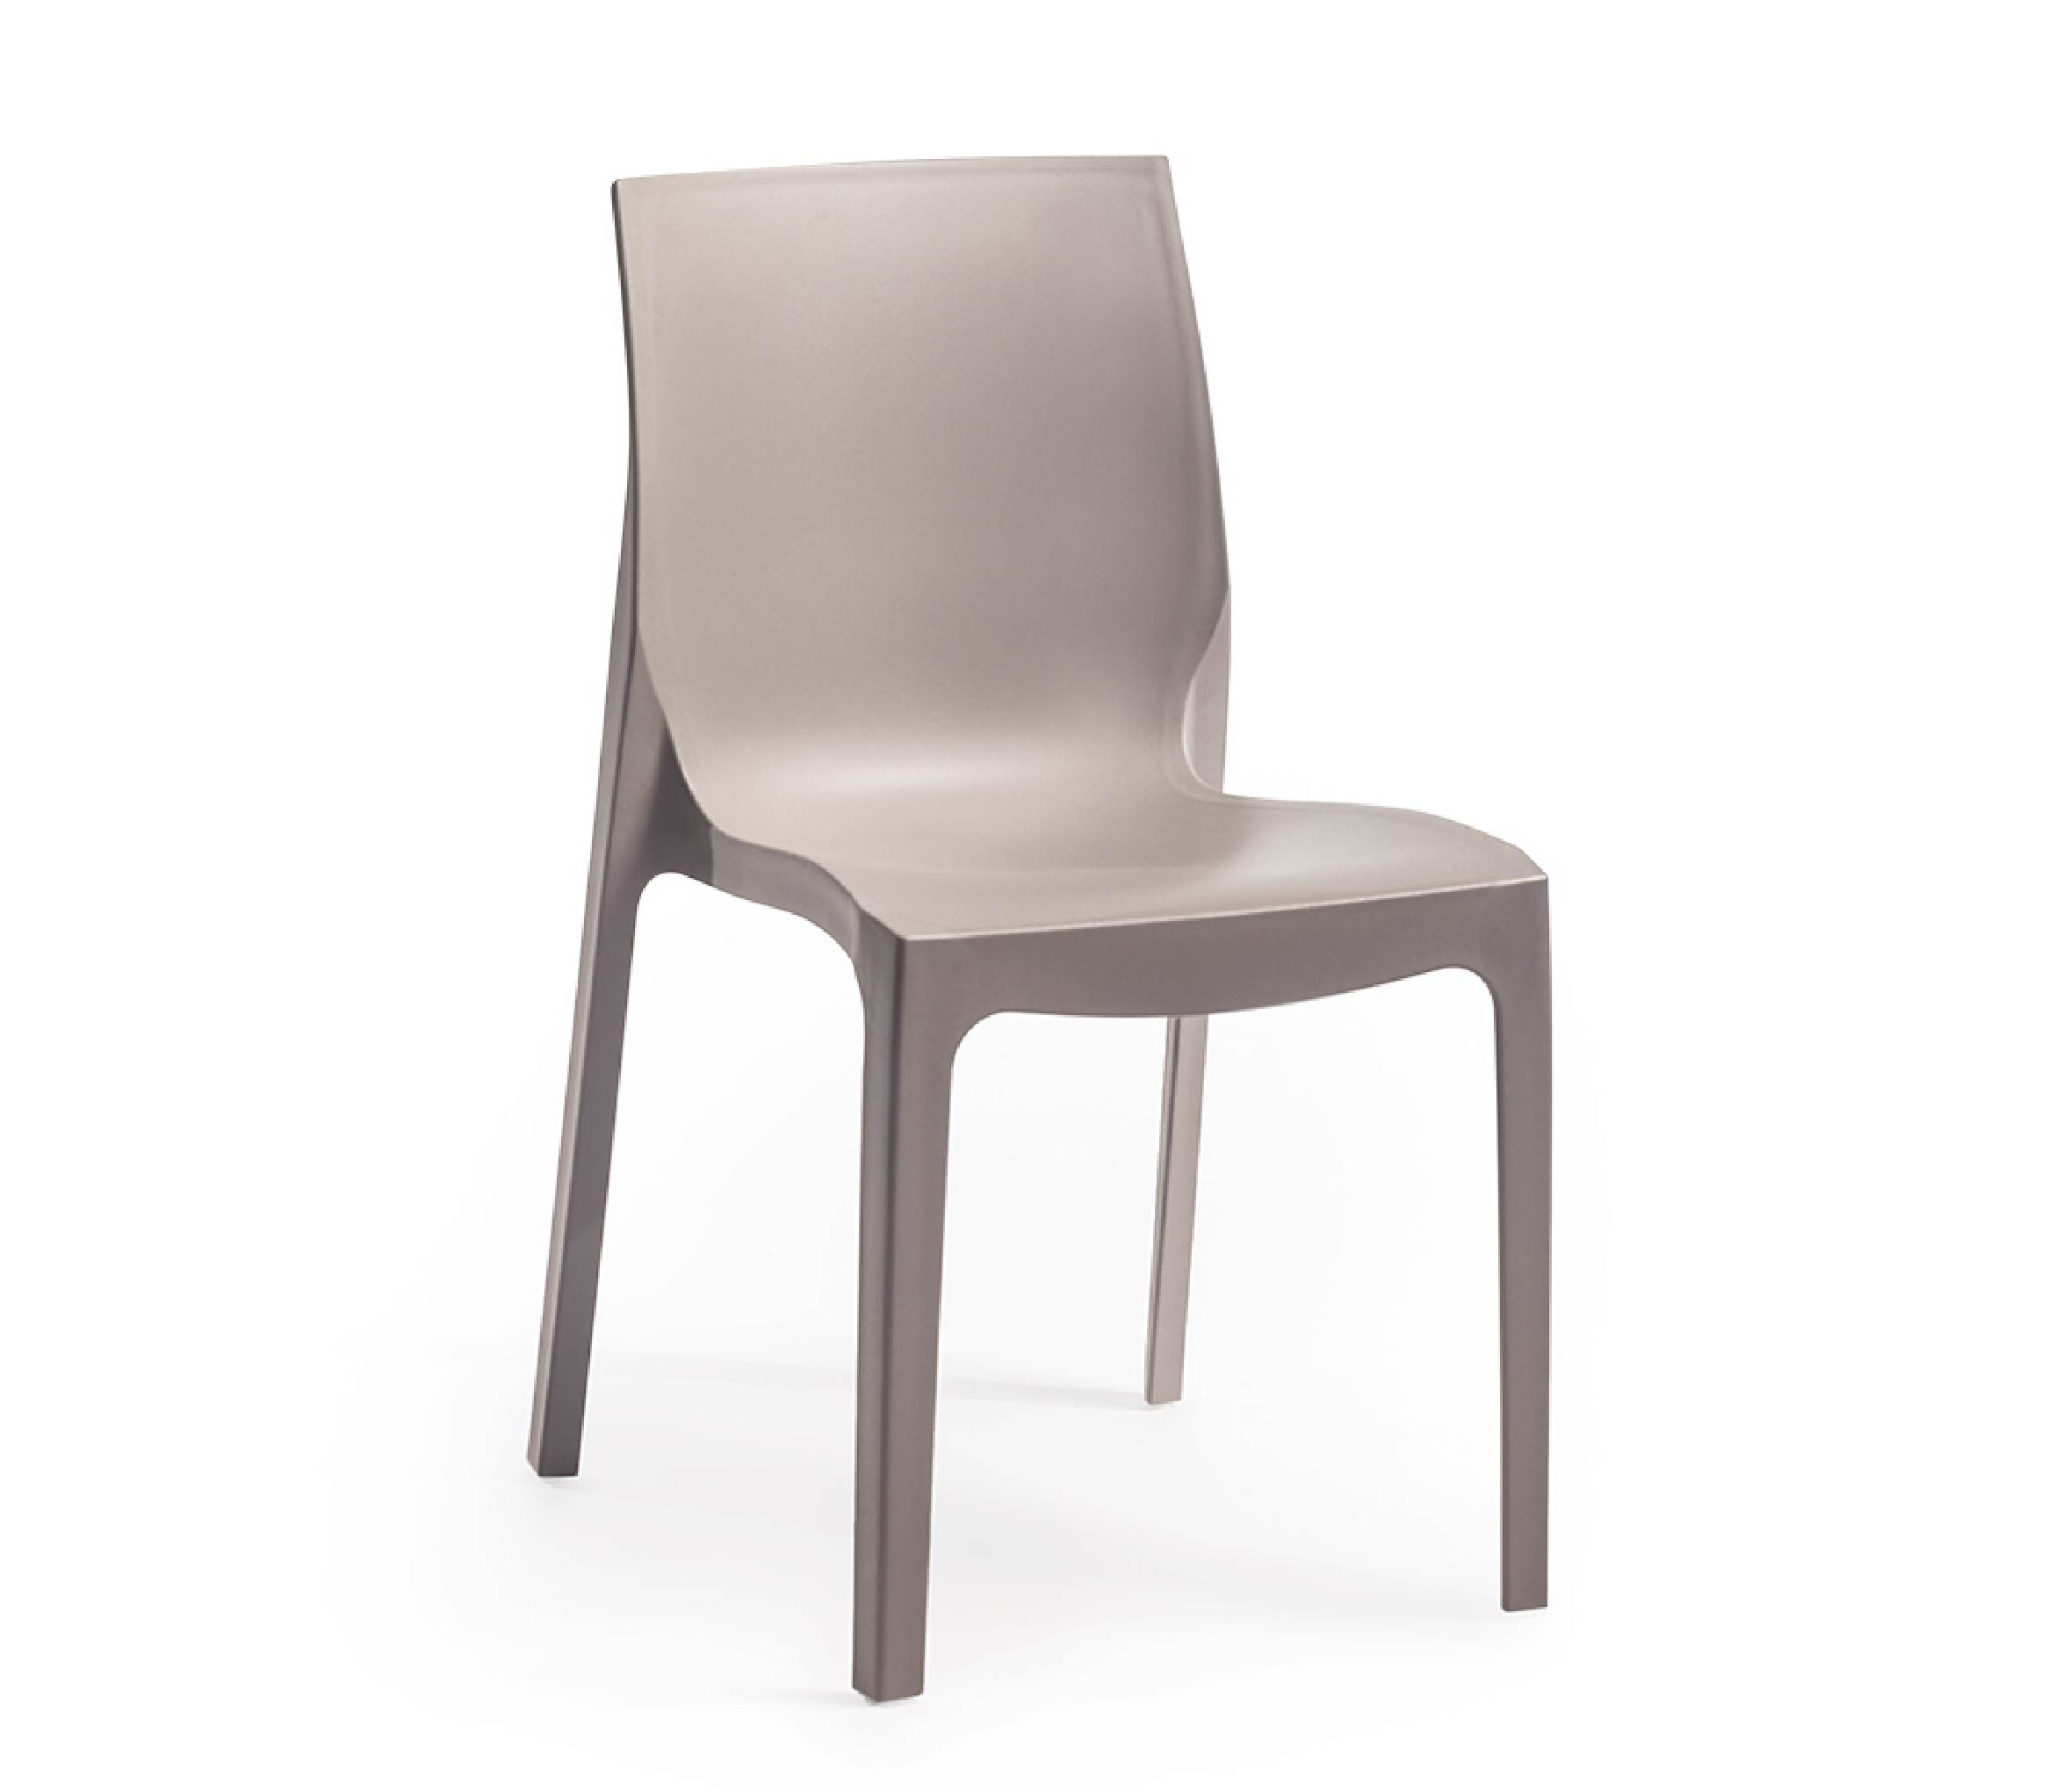 6_TENSAI_FURNITURE_EMMA_TAUPE_COLOR_PLASTIC_CHAIR_white_background_802_001